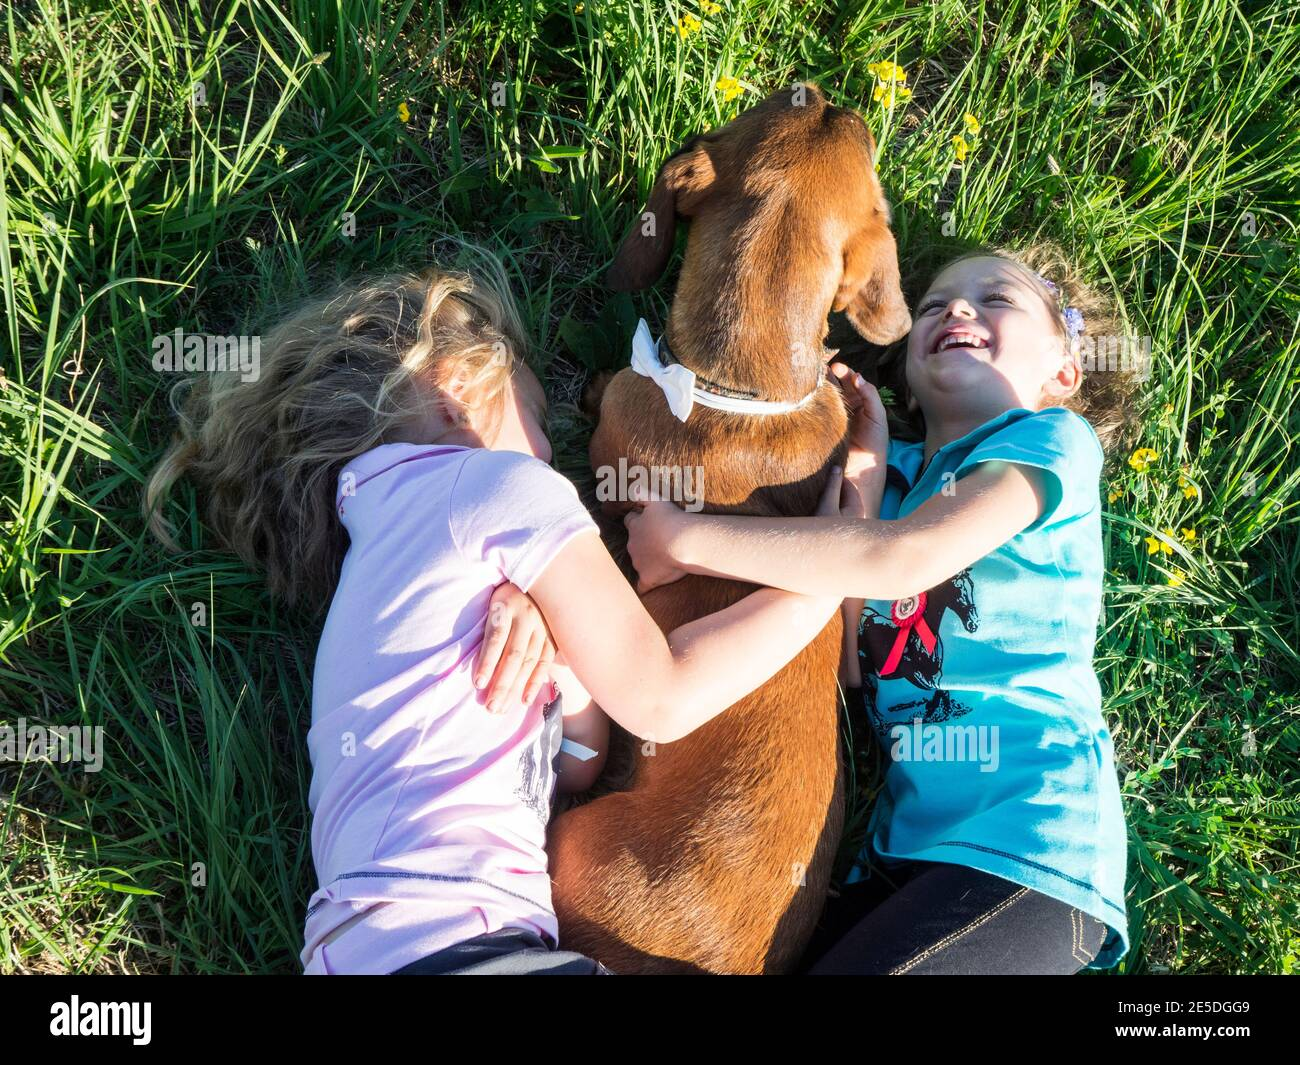 Overhead view of two girls lying on the grass cuddling their dog, Poland Stock Photo